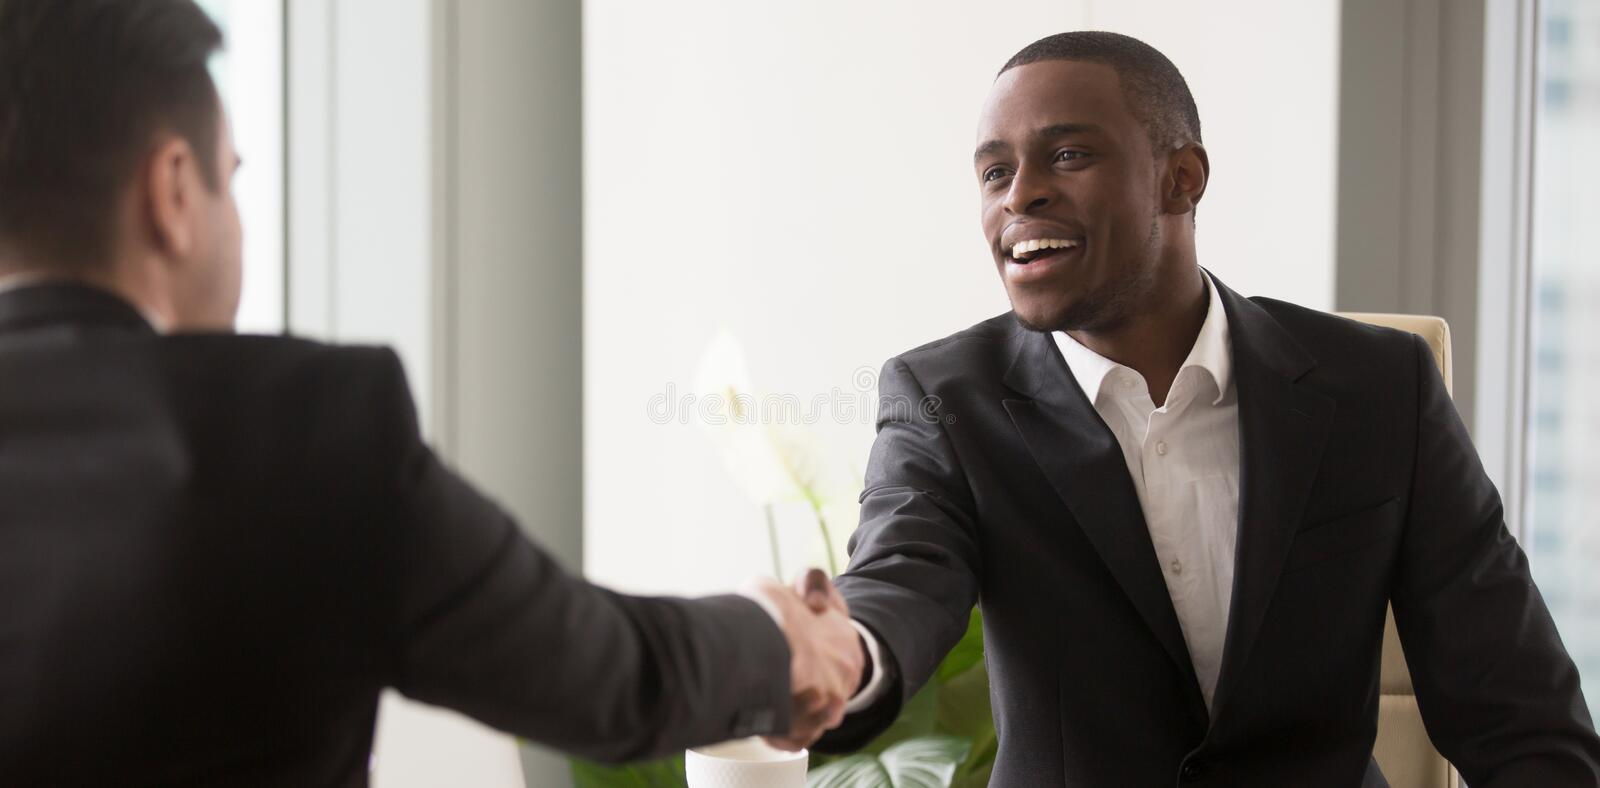 Horizontal image black and caucasian businesspeople starting negotiations shaking hands stock photo